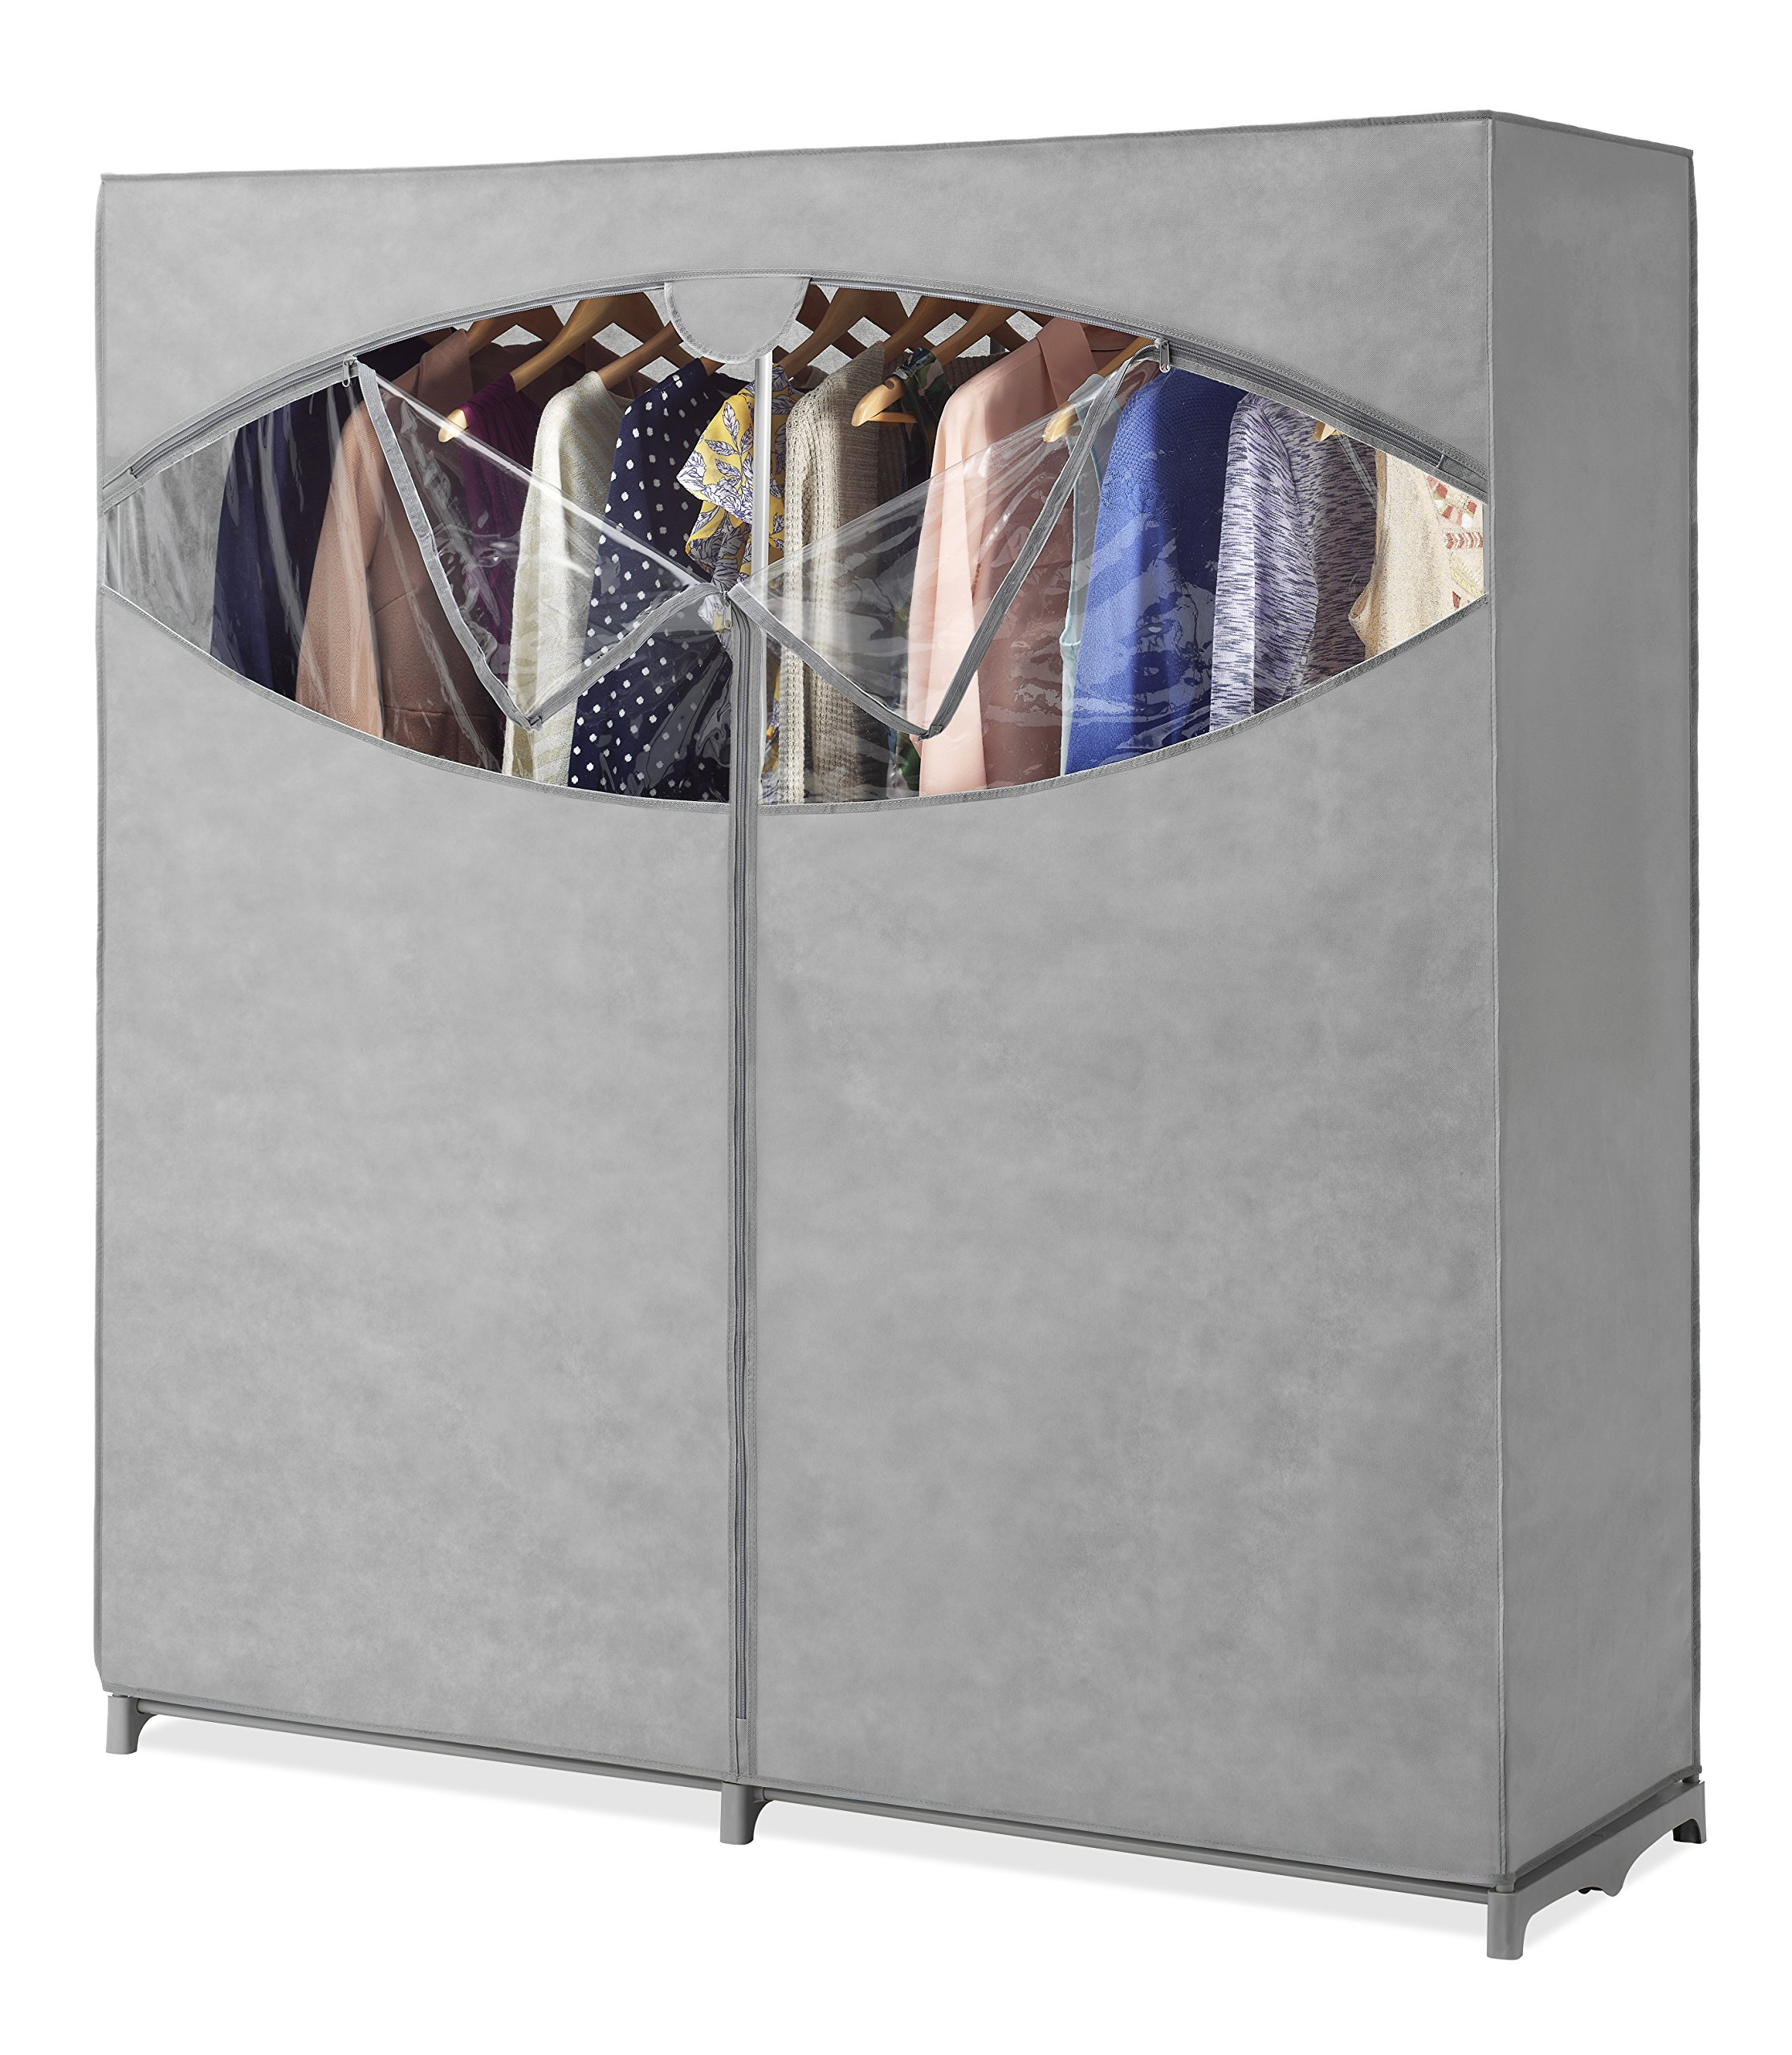 Whitmor Portable Wardrobe Clothes Storage Organizer Closet with Hanging Rack - Extra Wide -Grey Color - No-tool Assembly - Extra Strong & Durable - 60''L x 19.5''W x 64'' by Whitmor